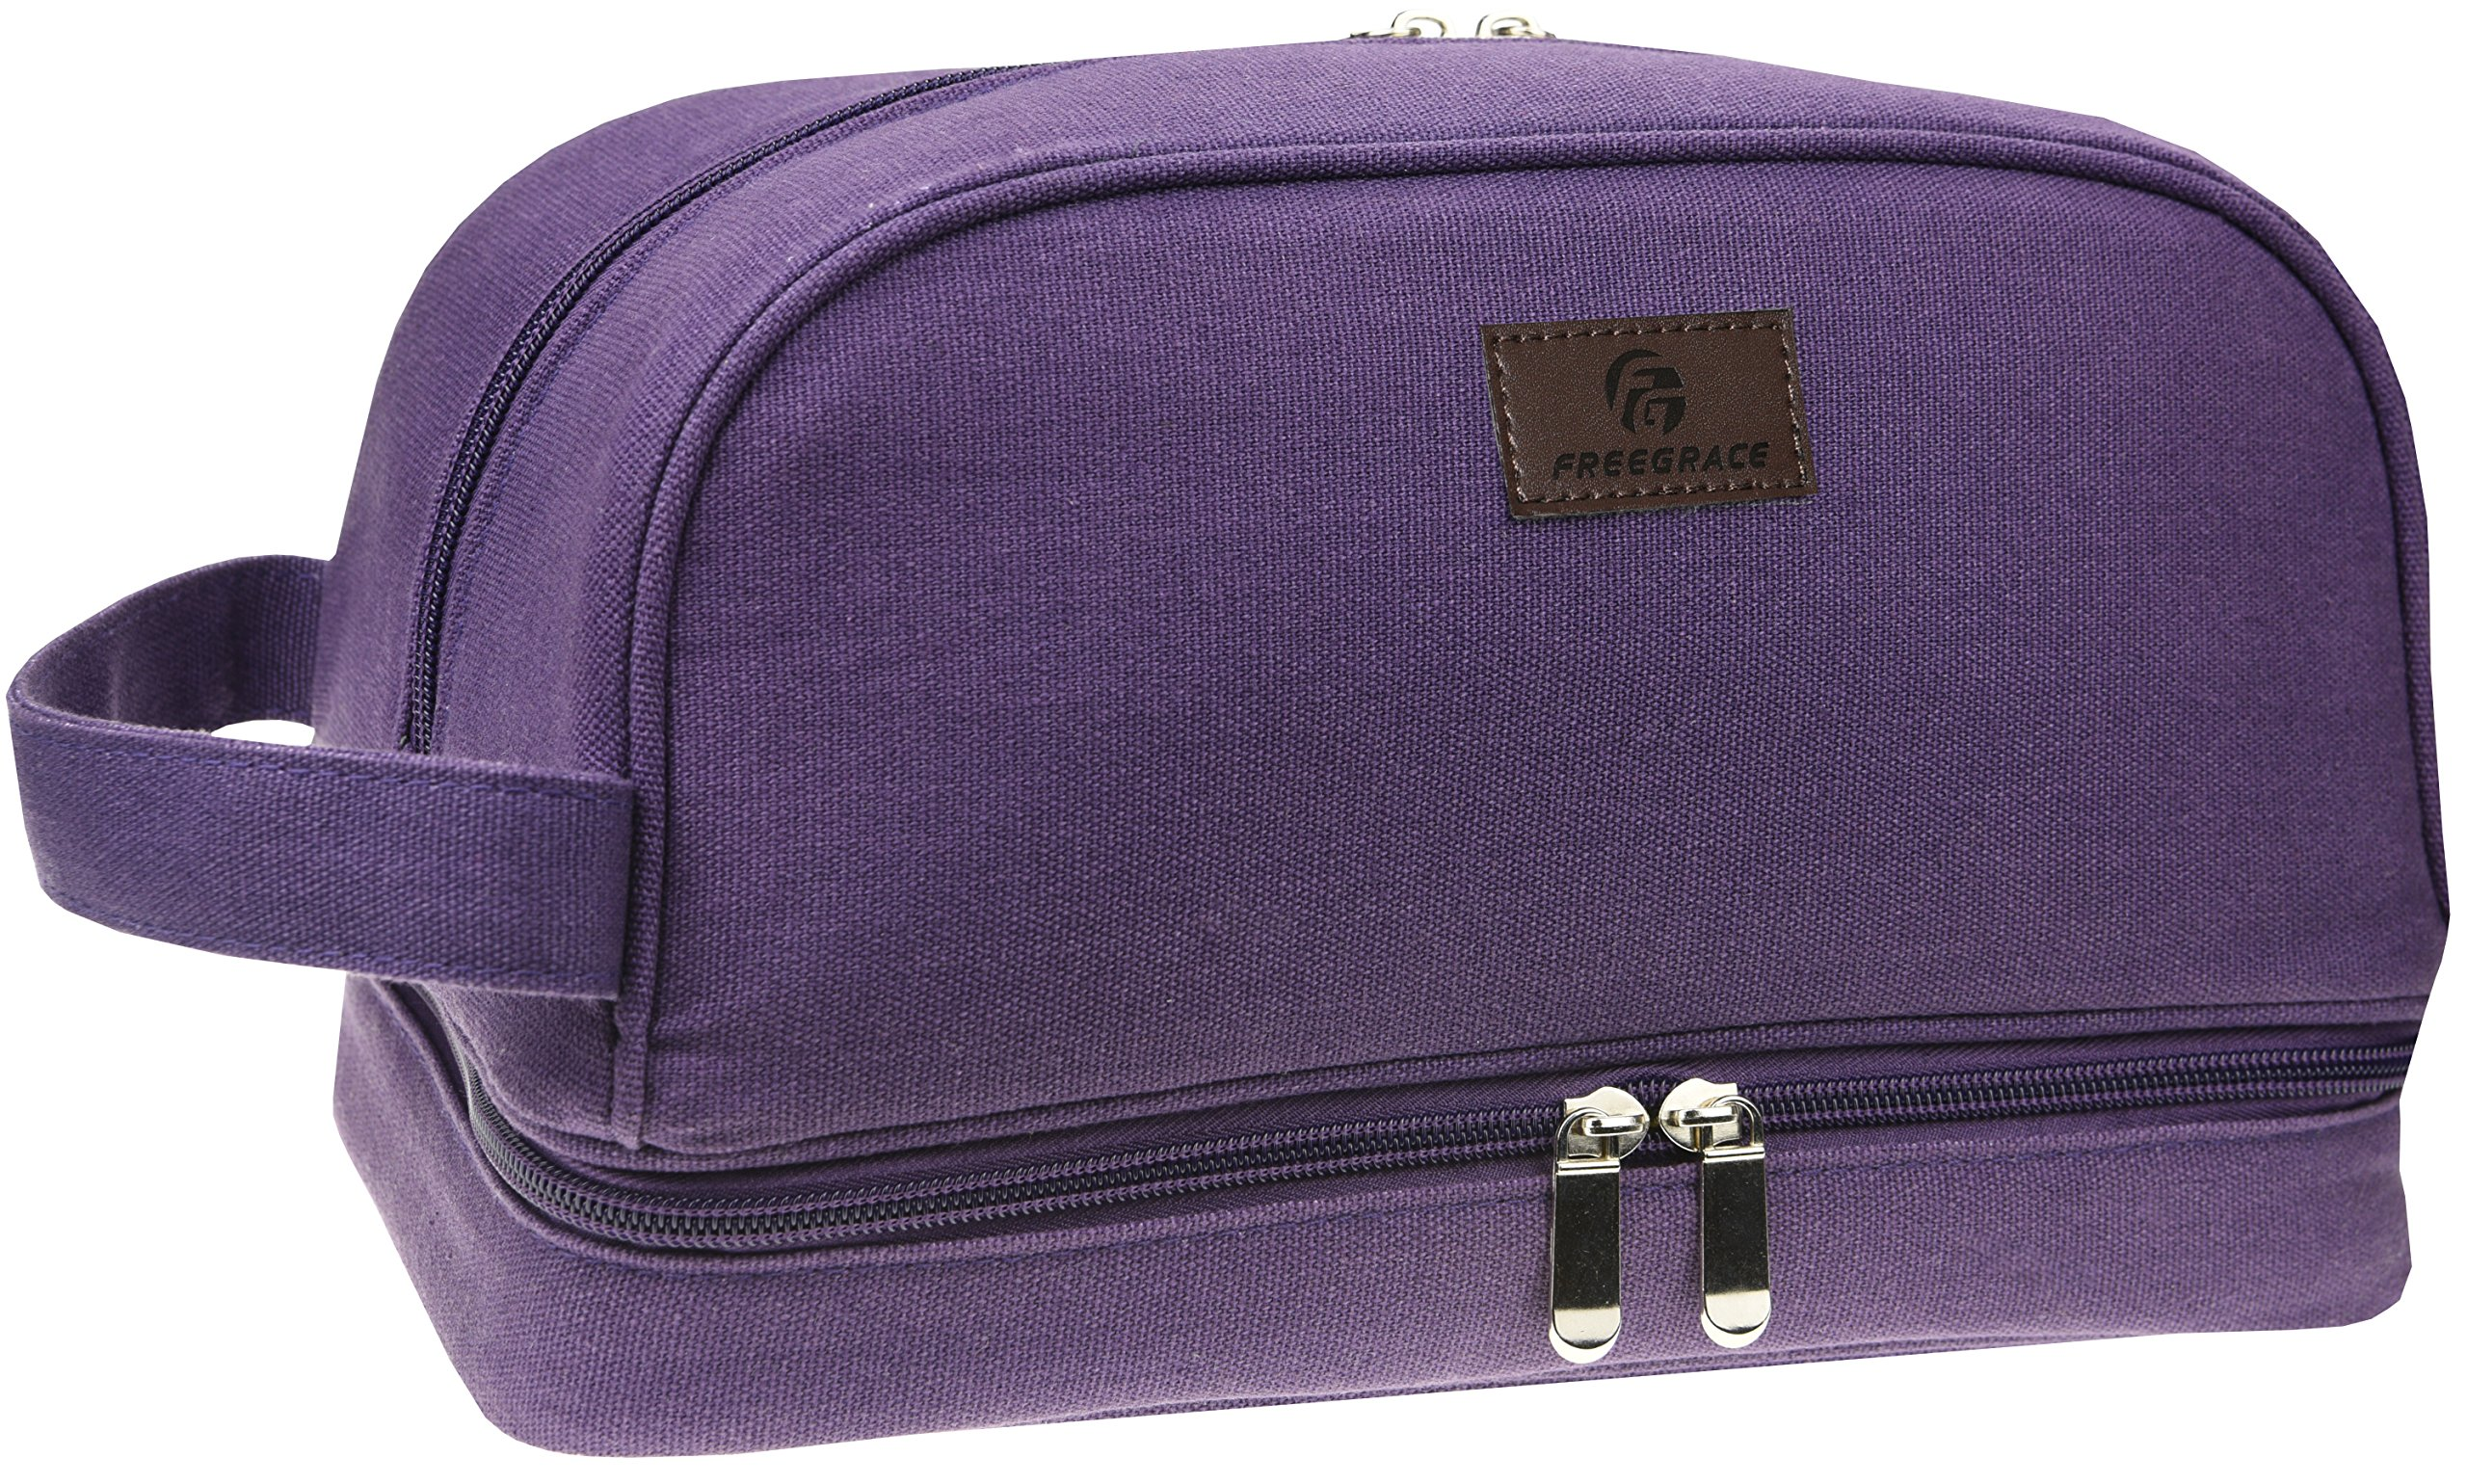 Premium Toiletry Bag By Freegrace -Travel Essentials Organizer - For Men & Women - Perfect For Accessories, Cosmetics, Personal Items, Shampoo, Body Wash (Purple)